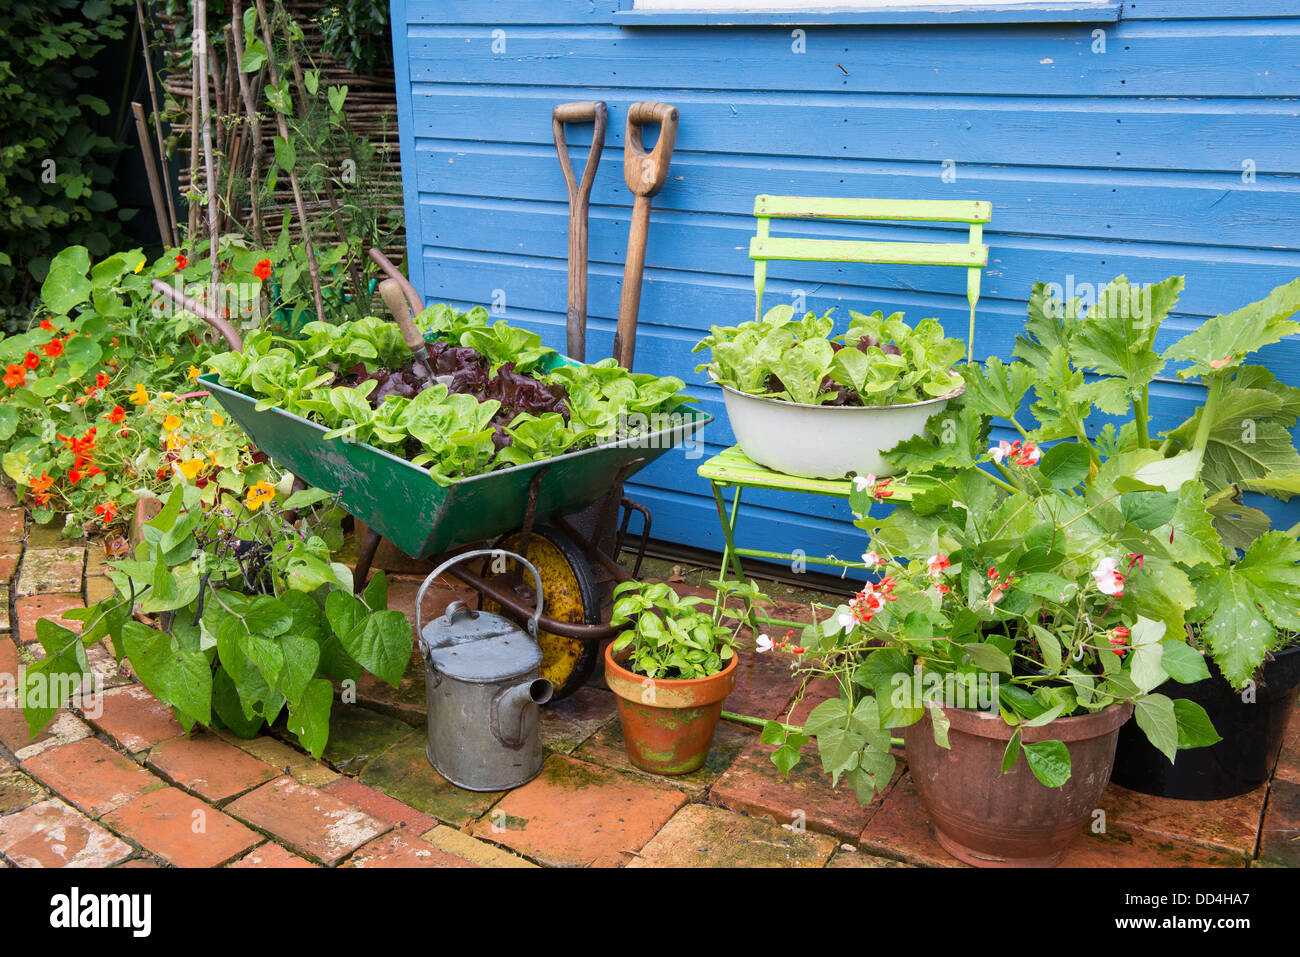 High Quality Small Garden Corner With Old Wheelbarrow And Old Enameled Bowl Planted With  Lettuce Varieties U0027Little